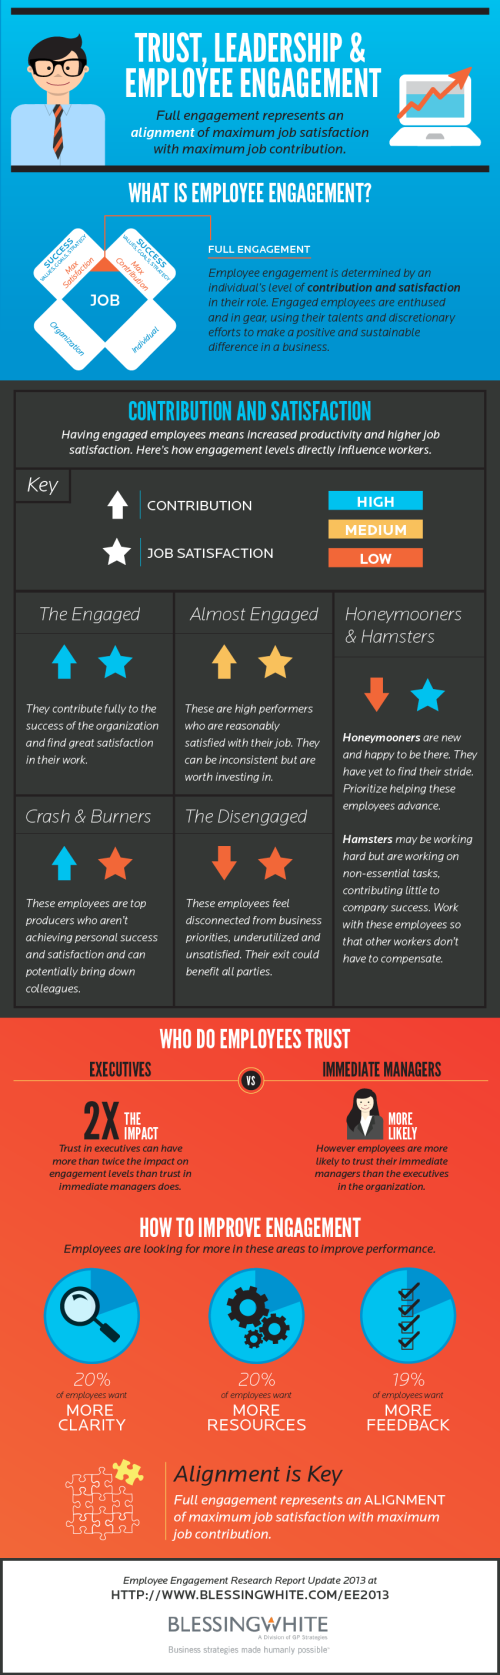 gp_employeeengagement_72_v5-01